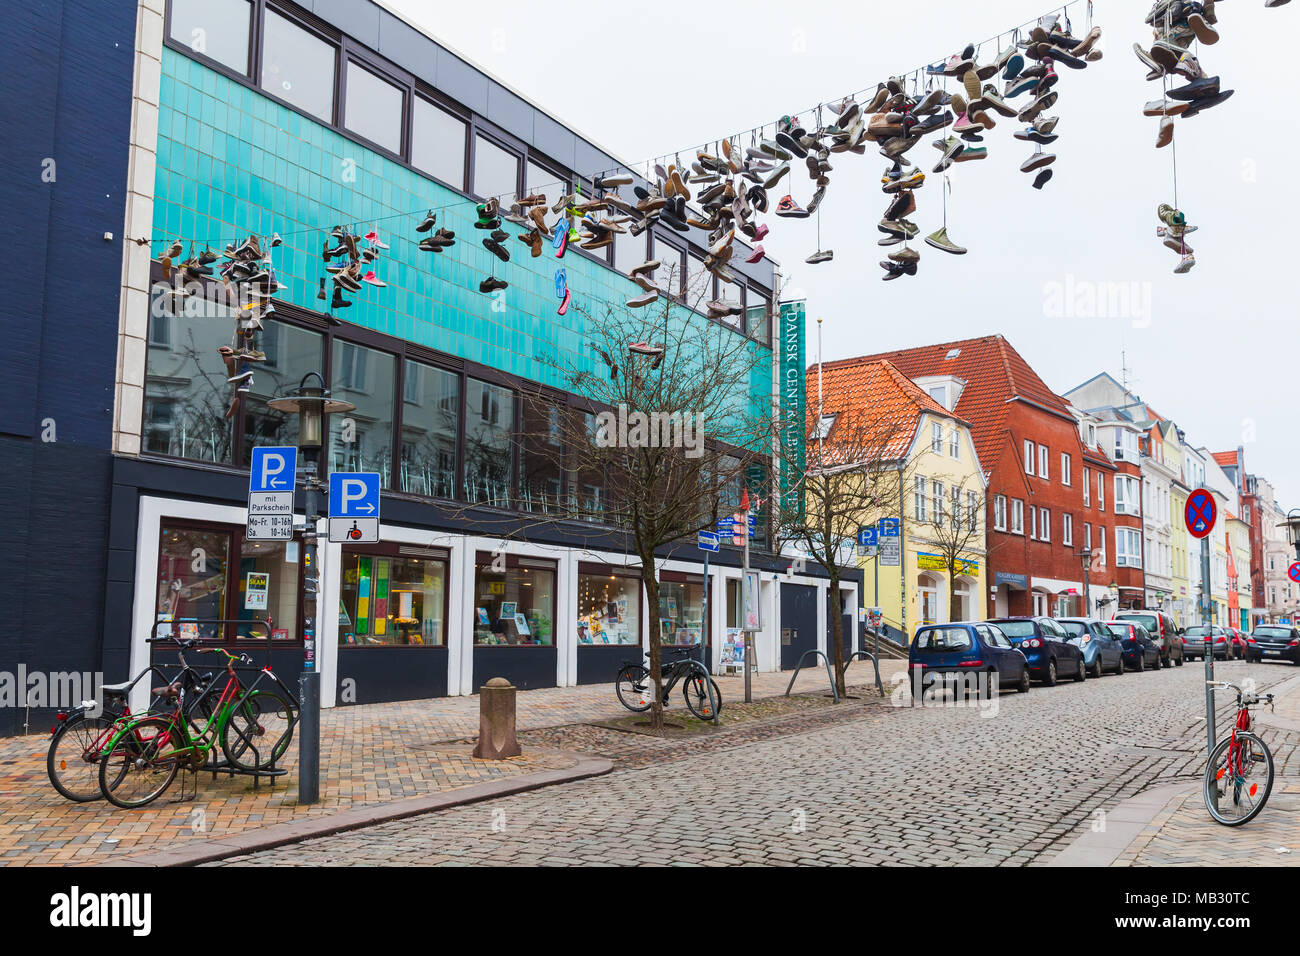 Flensburg Germany Shoes Stockfotos & Flensburg Germany Shoes Bilder ...